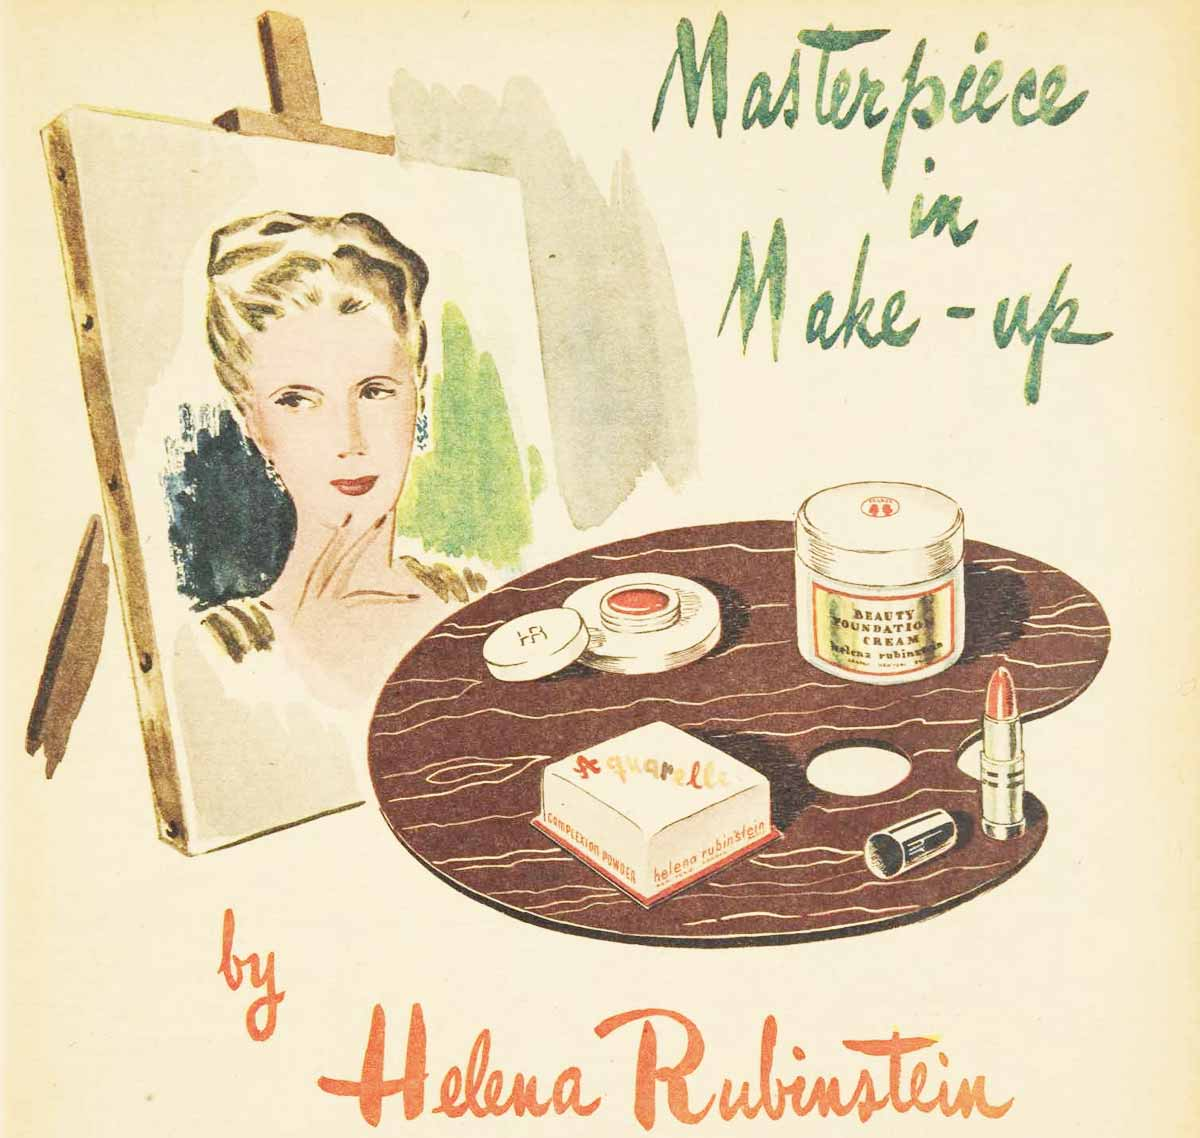 Helena-Rubinstein-1942-Master-piece-in-makeup